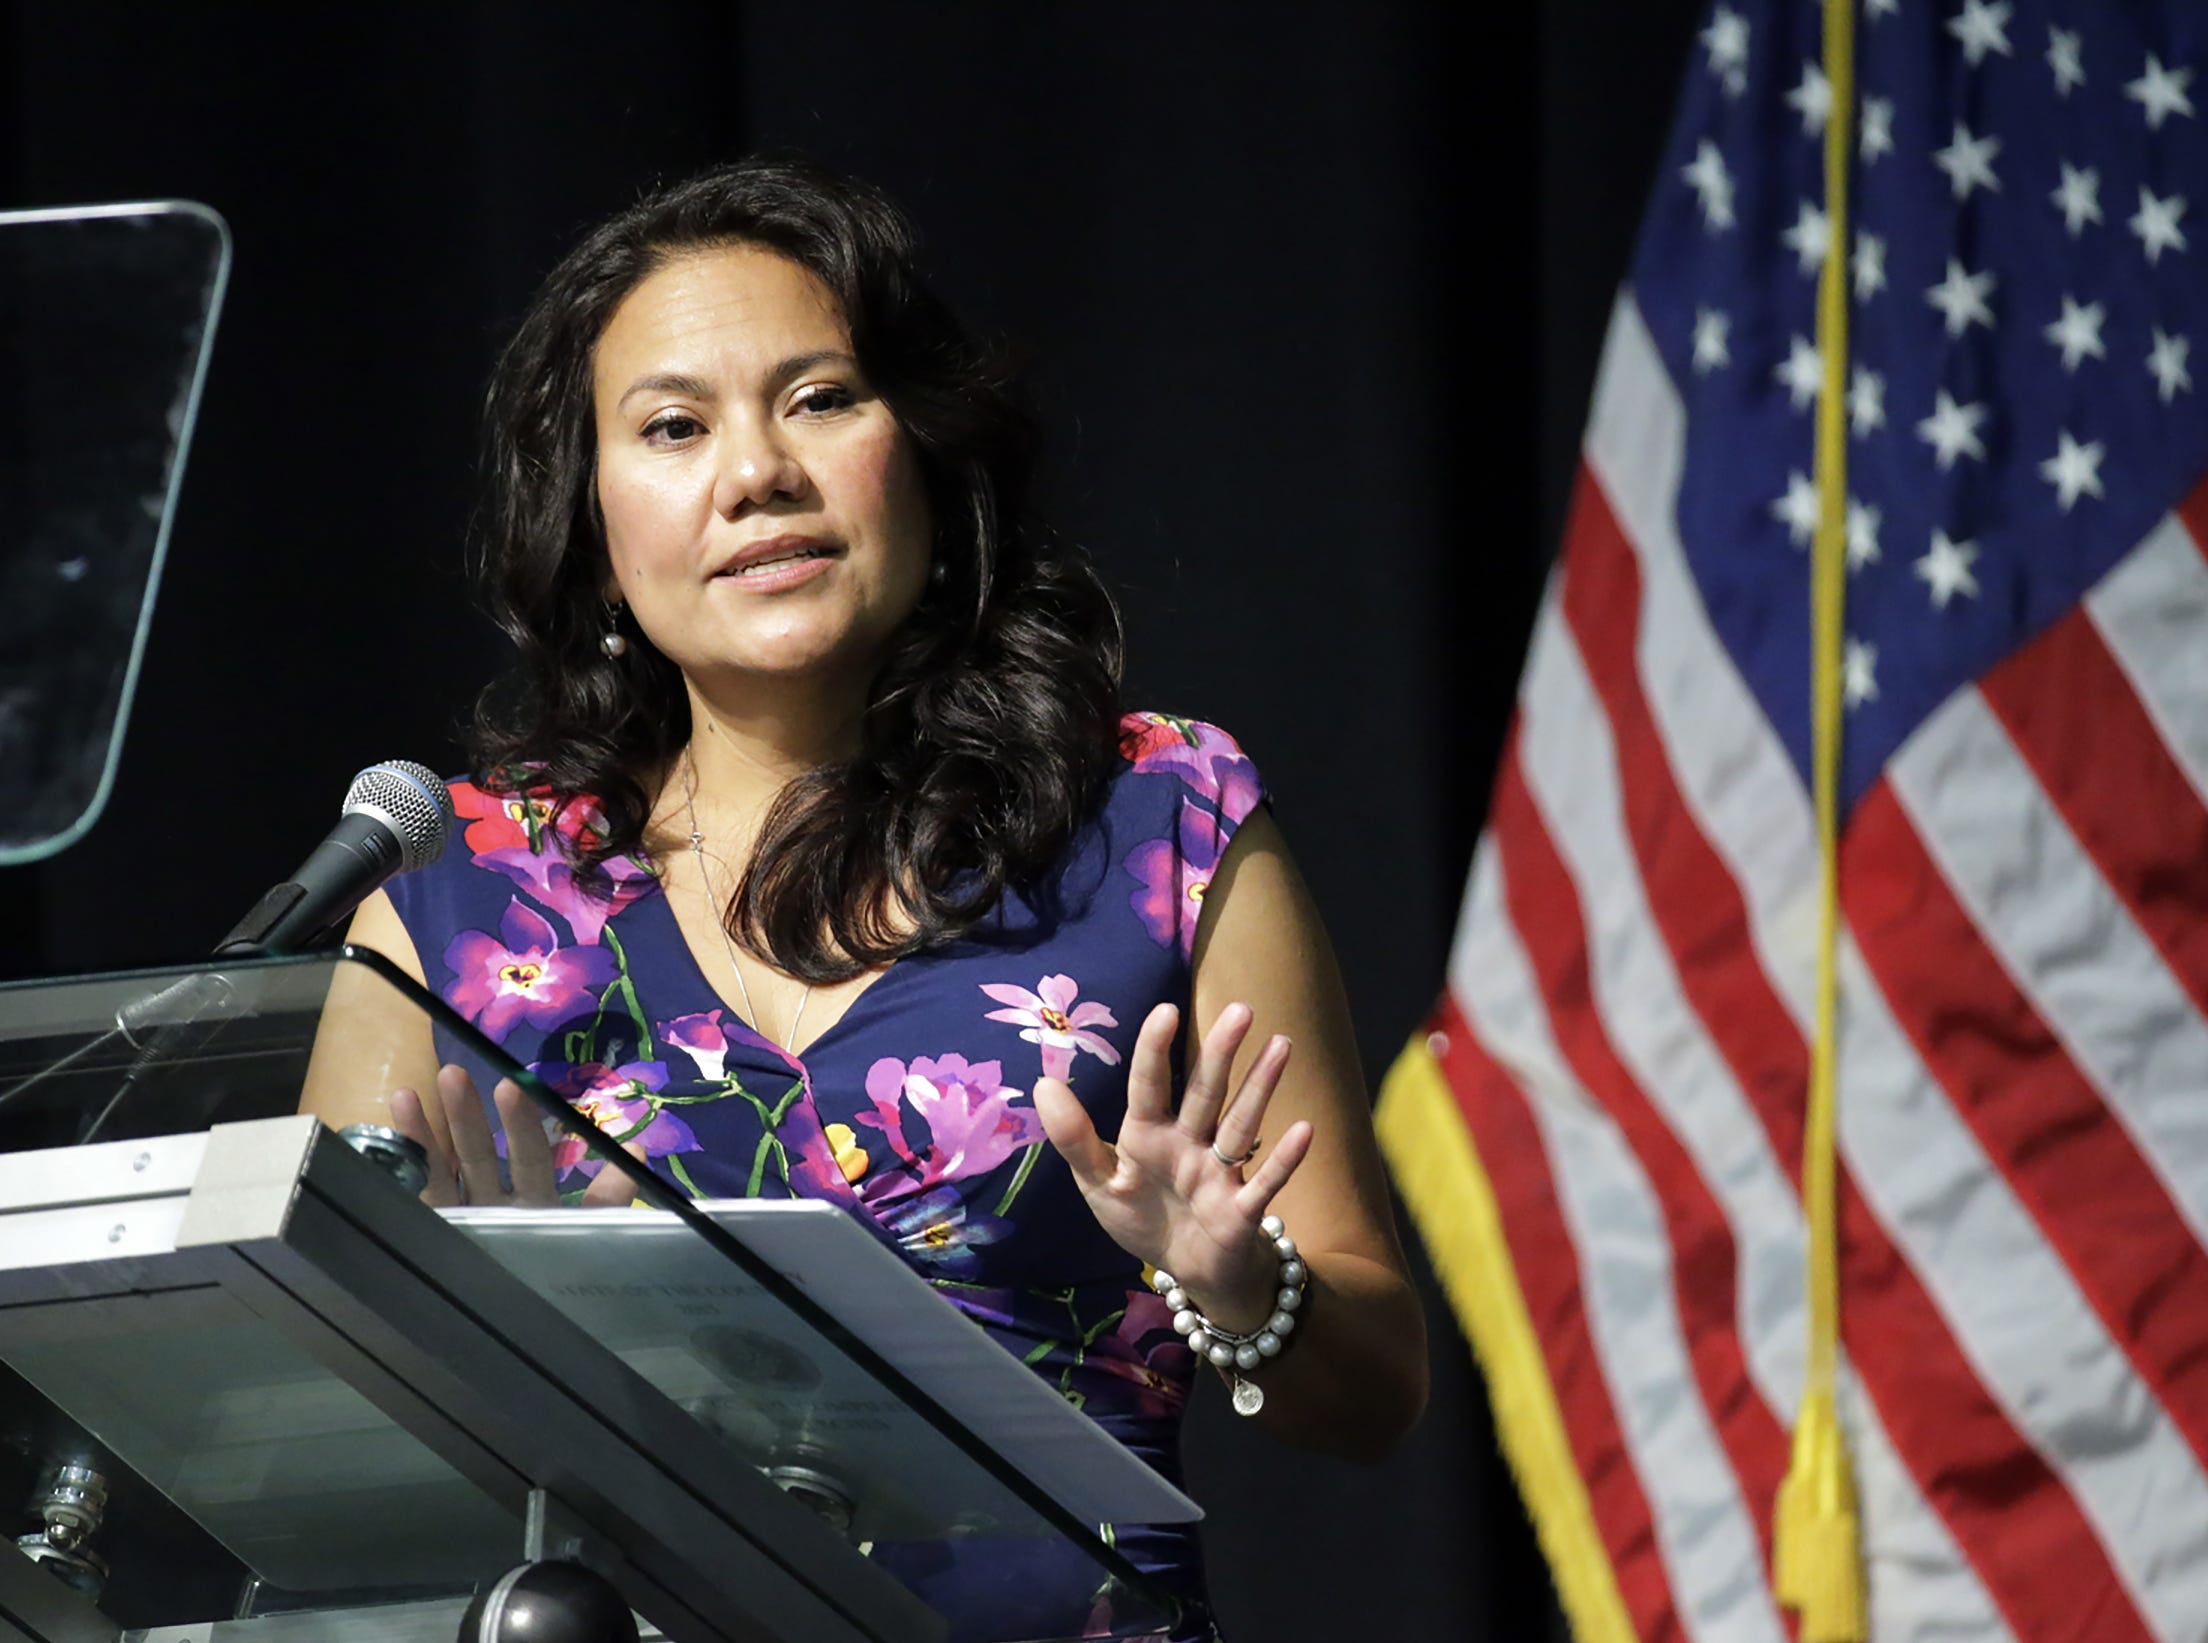 County Judge Veronica Escobar delivers her final State of the County address.